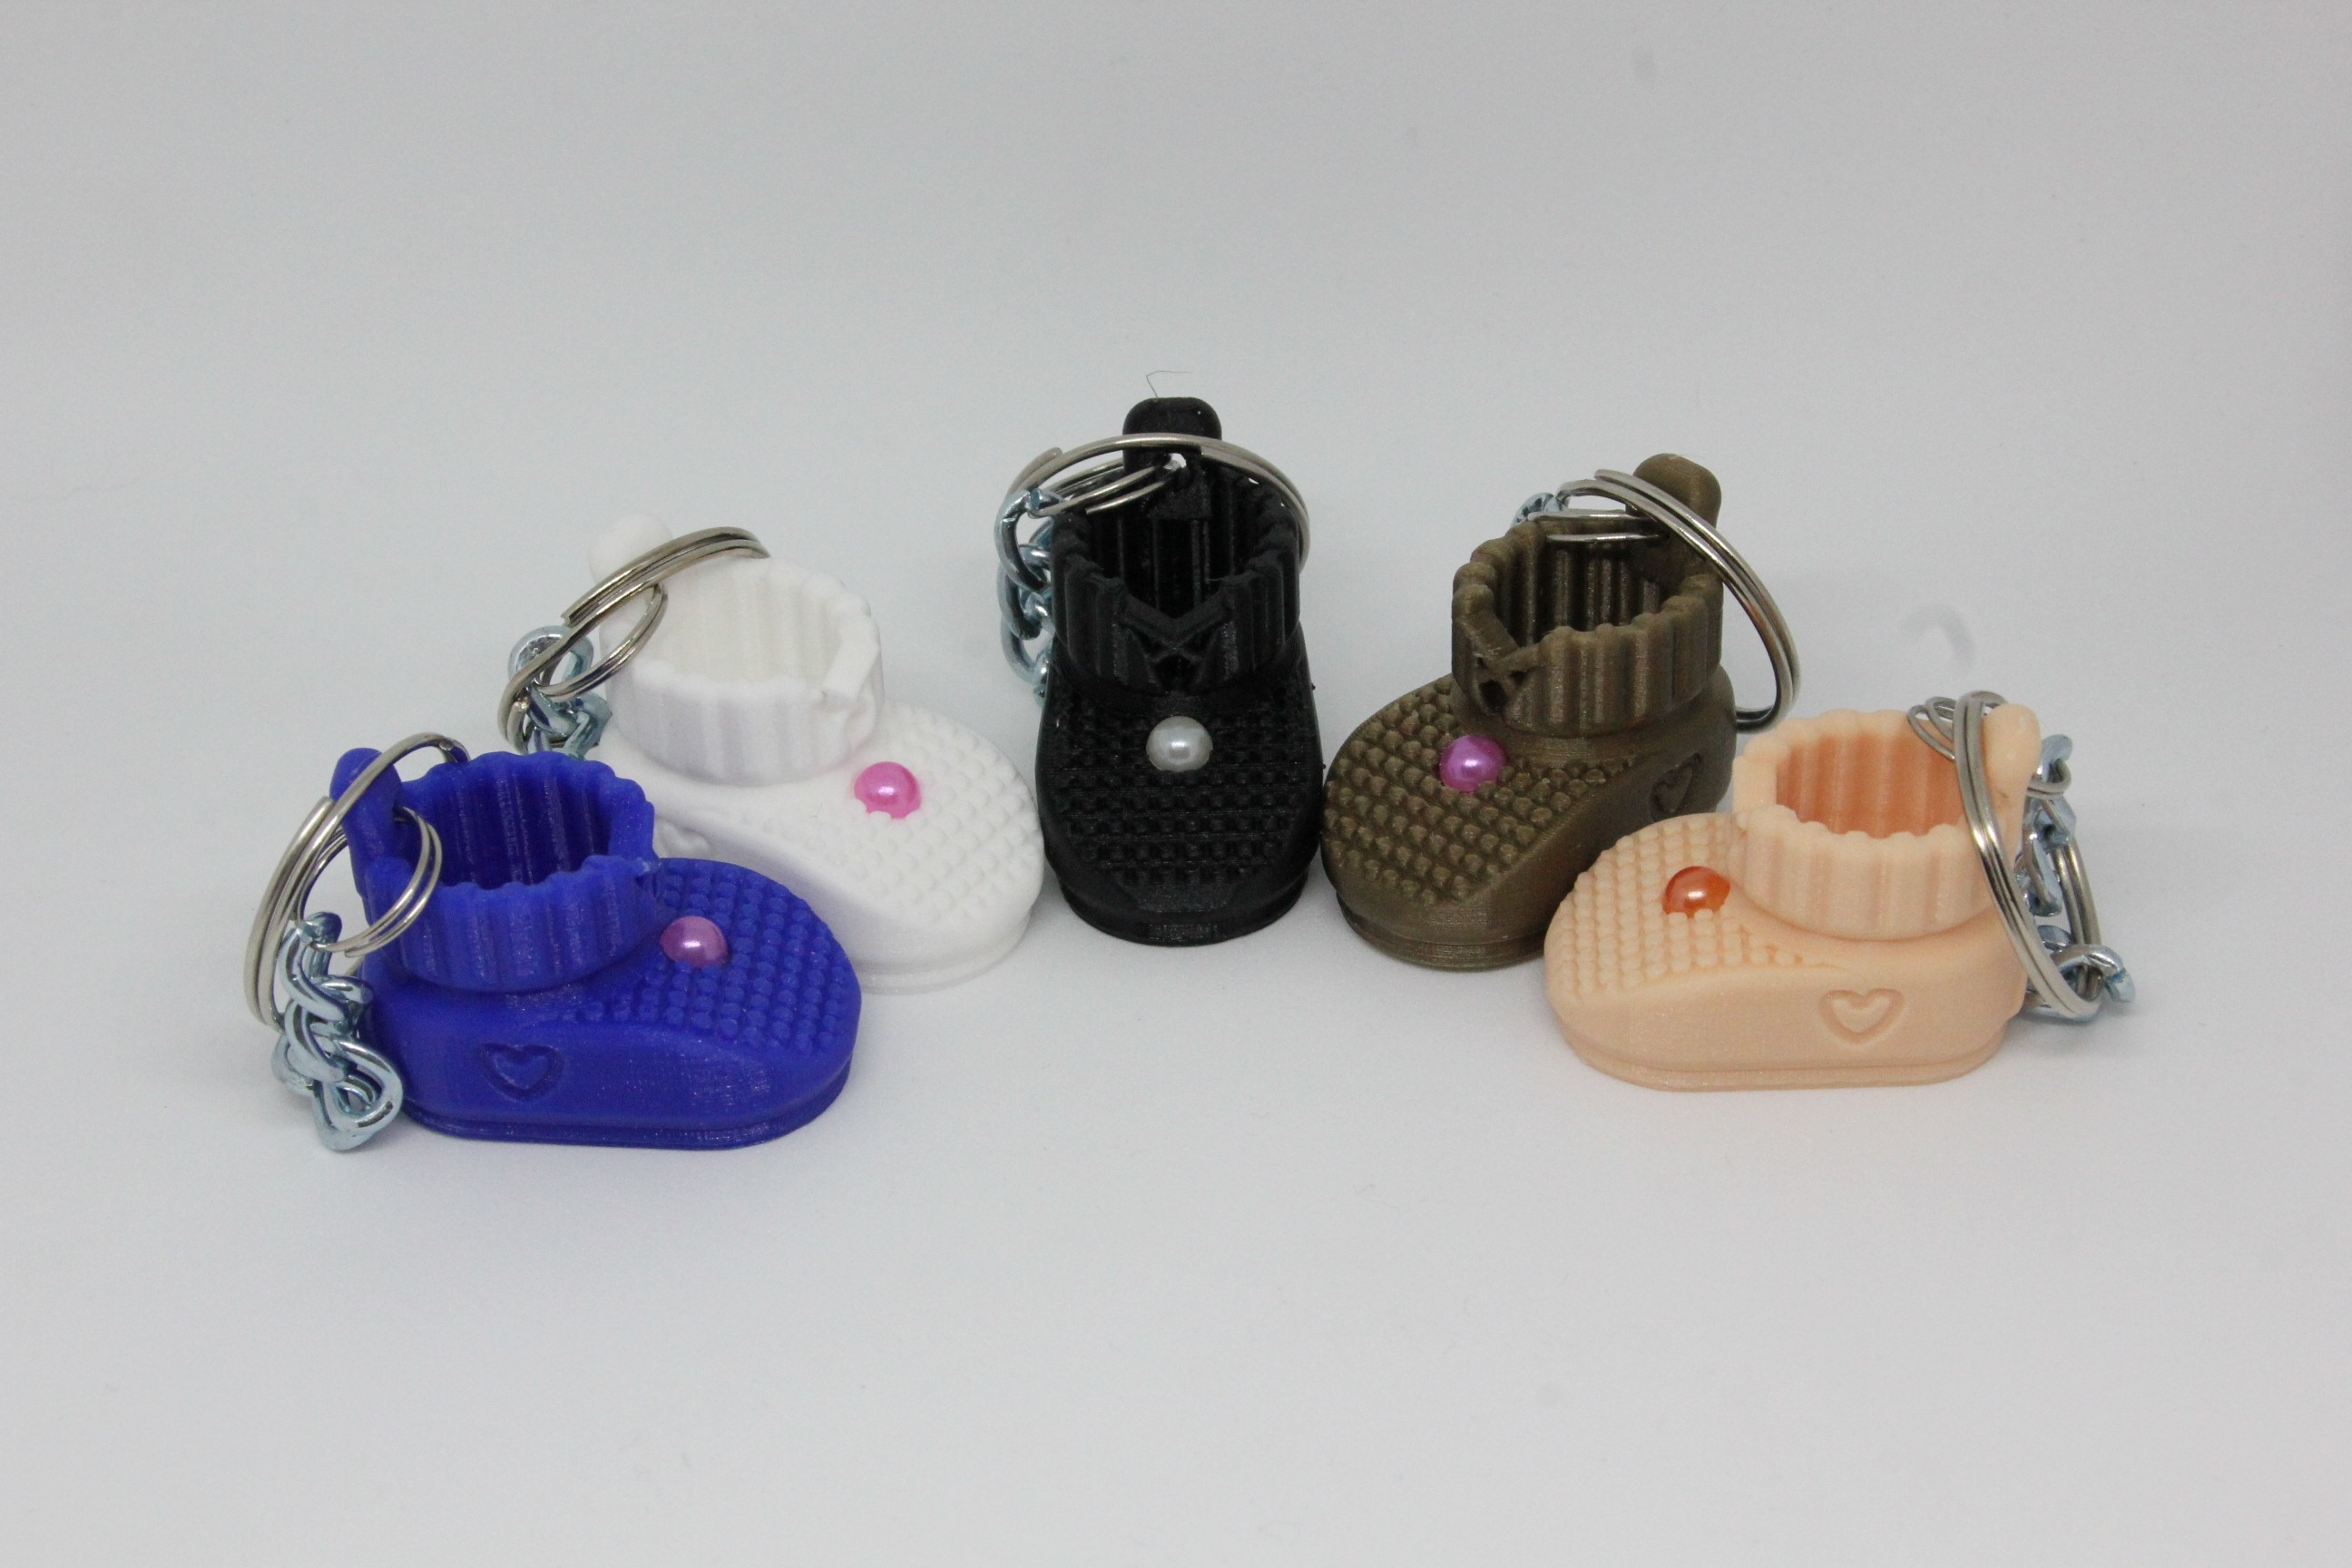 IMG_4081.JPG Download free STL file PLP baby slipper • 3D printer model, PLP